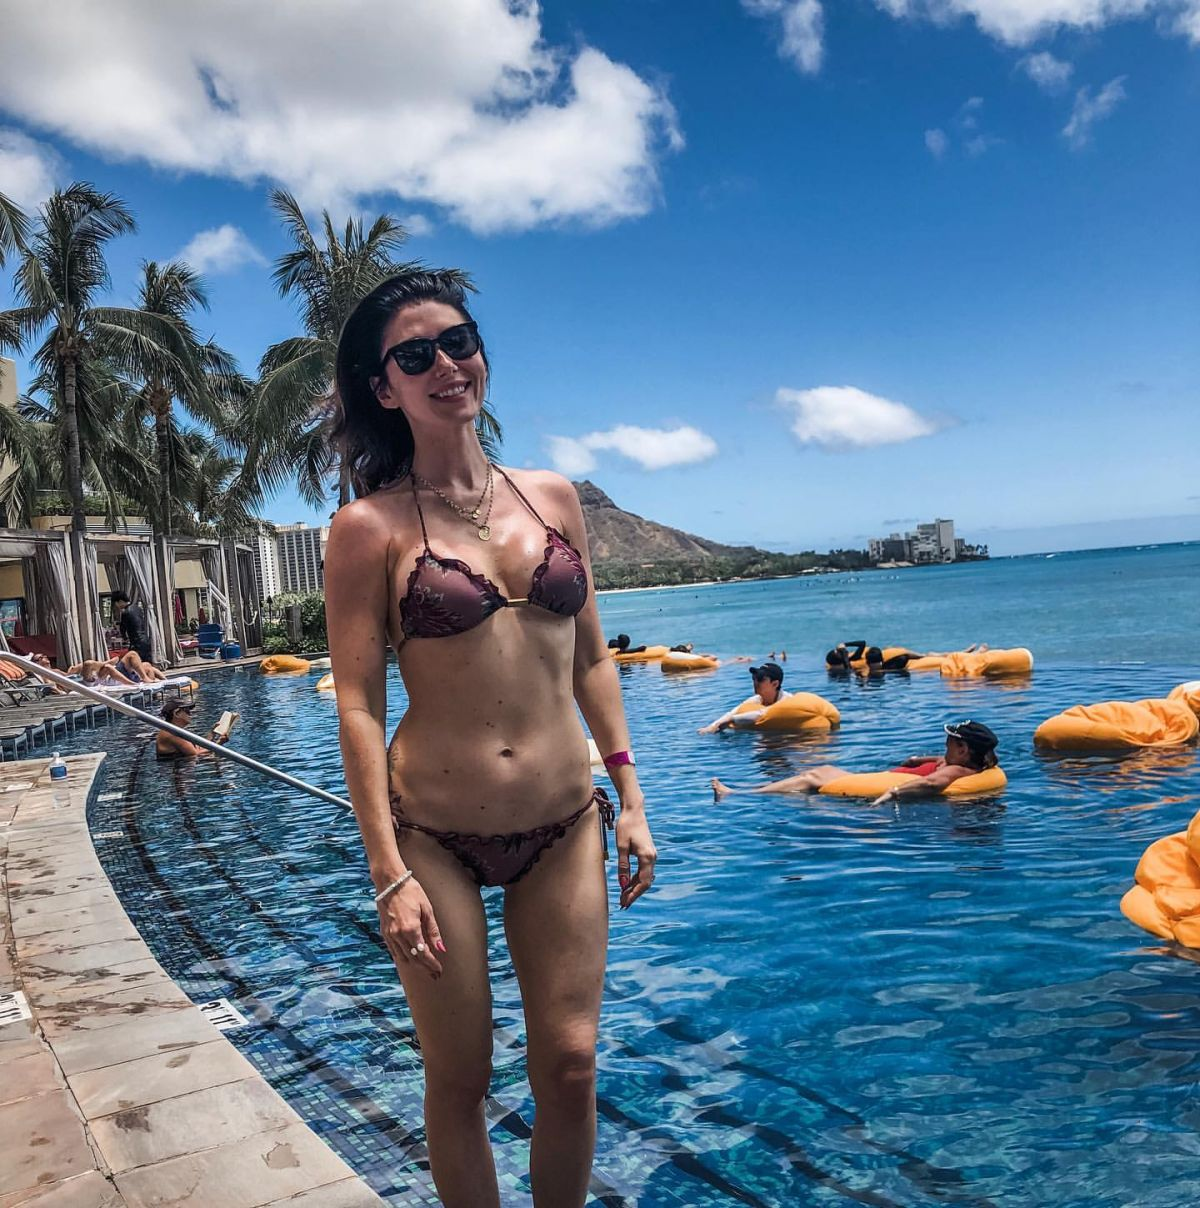 Jewel Staite Sexy Pics jewel staite in bikini in hawaii – instagram pictures 05/16